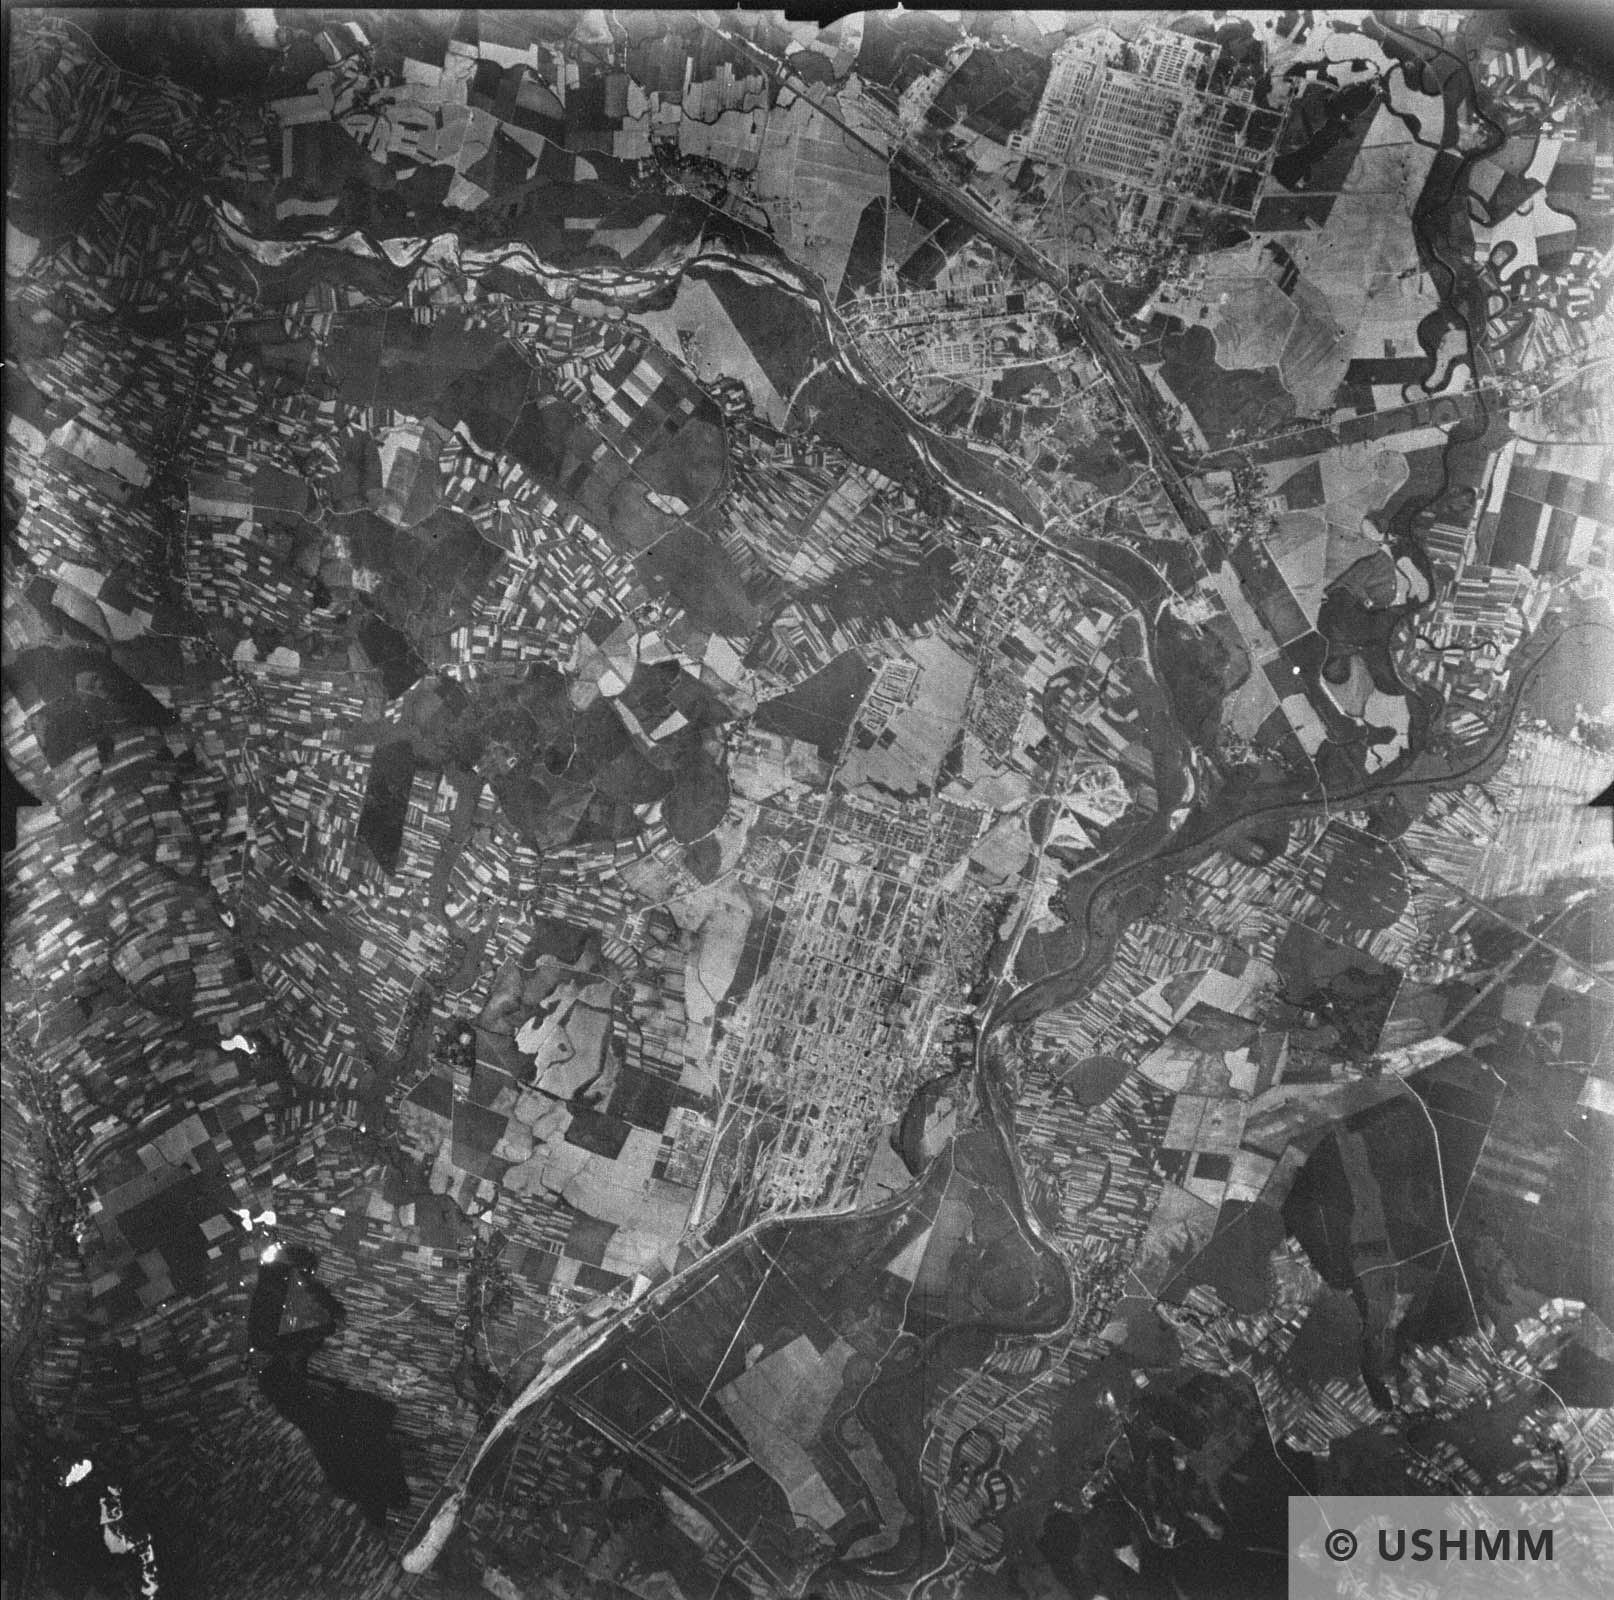 An aerial reconnaissance photograph of the Auschwitz area showing Auschwitz I, Auschwitz II, and Auschwitz III, as well as the I.G. Farben complex. 31 May 1944 USHMM 04144